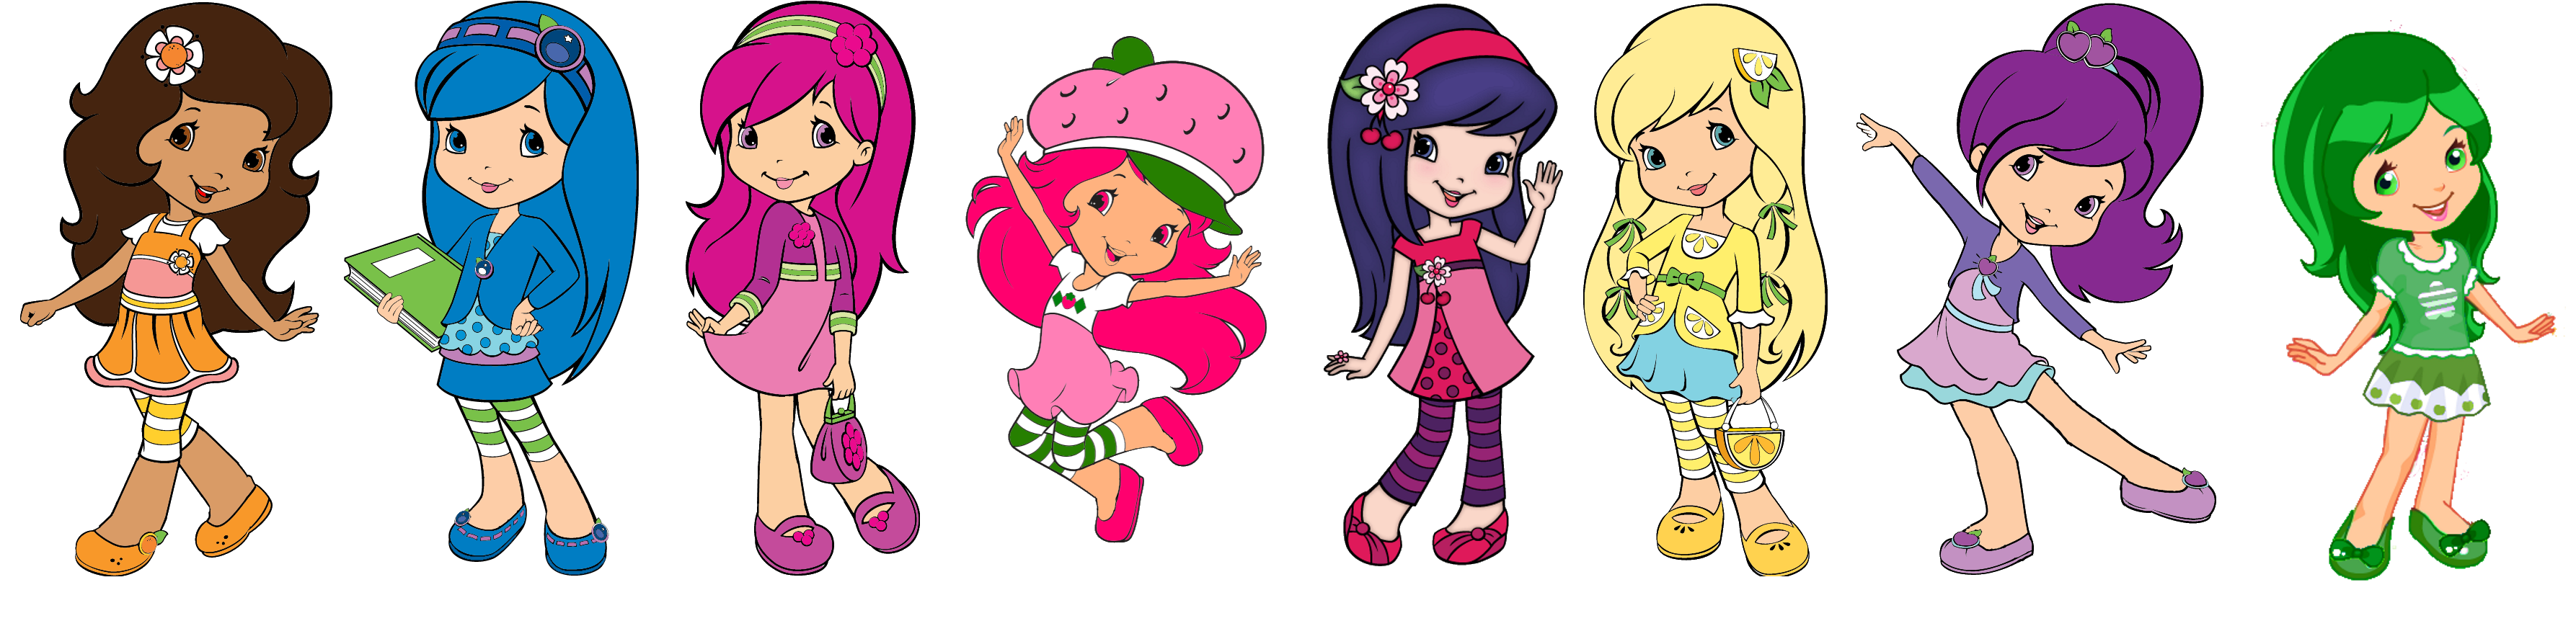 Mega Strawberry Shortcake Characters